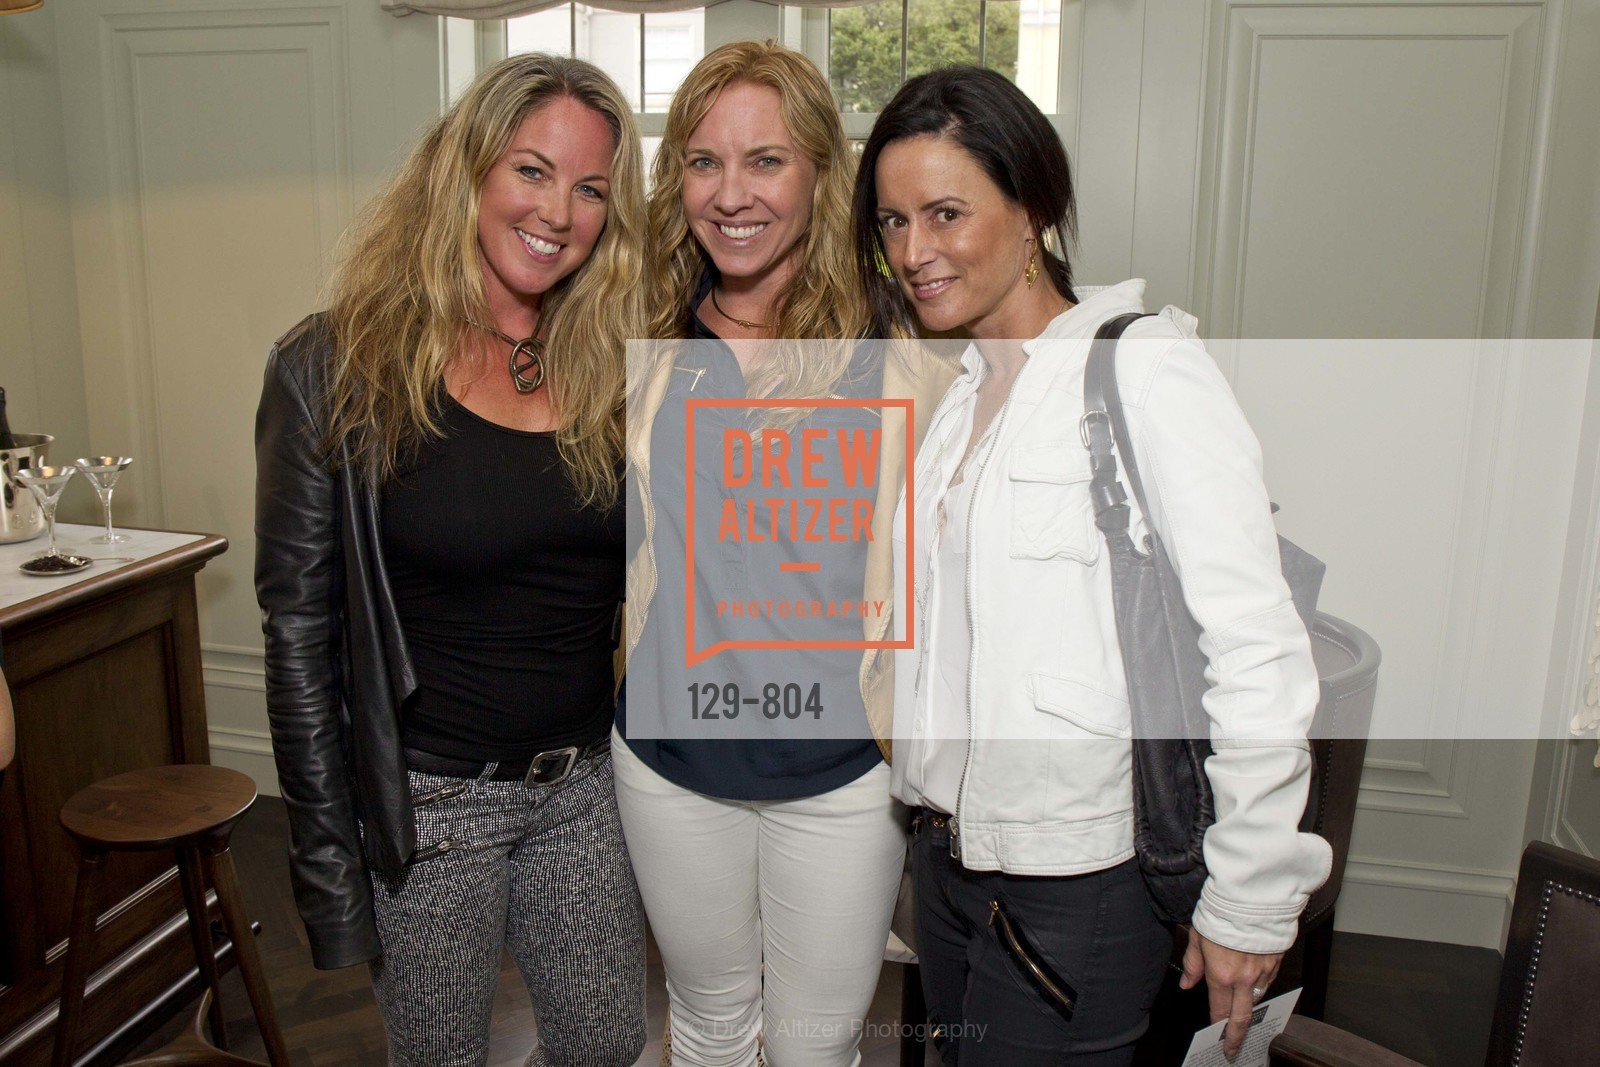 Danielle Hirsch, Julie Zener, Tara Shawn, San Francisco Decorator Showcase Opening Night Party, US, April 24th, 2015,Drew Altizer, Drew Altizer Photography, full-service agency, private events, San Francisco photographer, photographer california